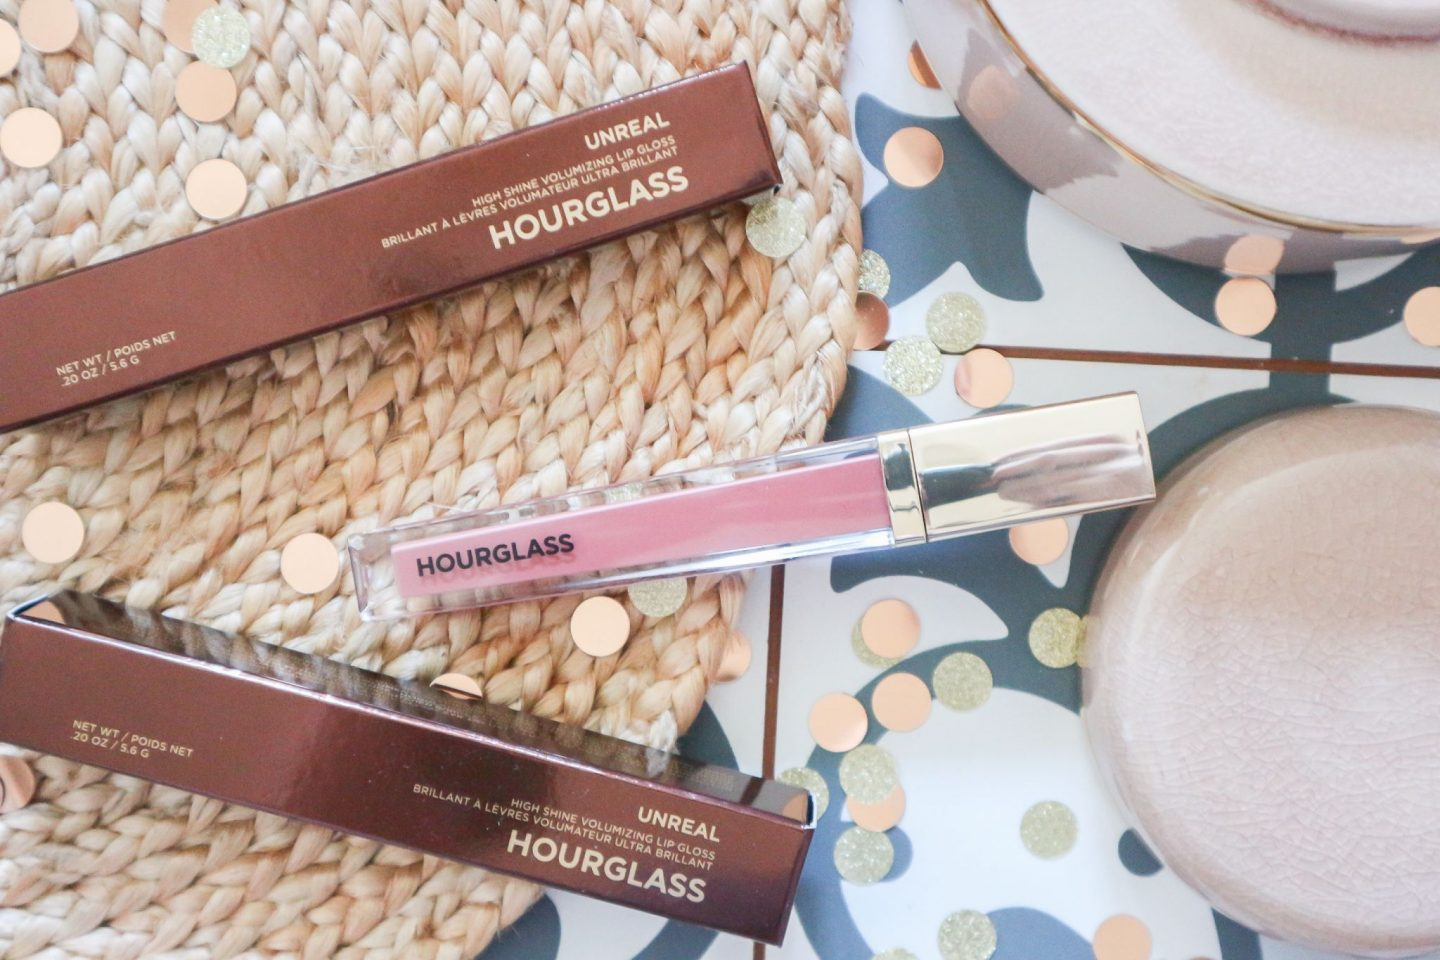 Hourglass Unreal High Shine Volumizing Lip Gloss in Canvas